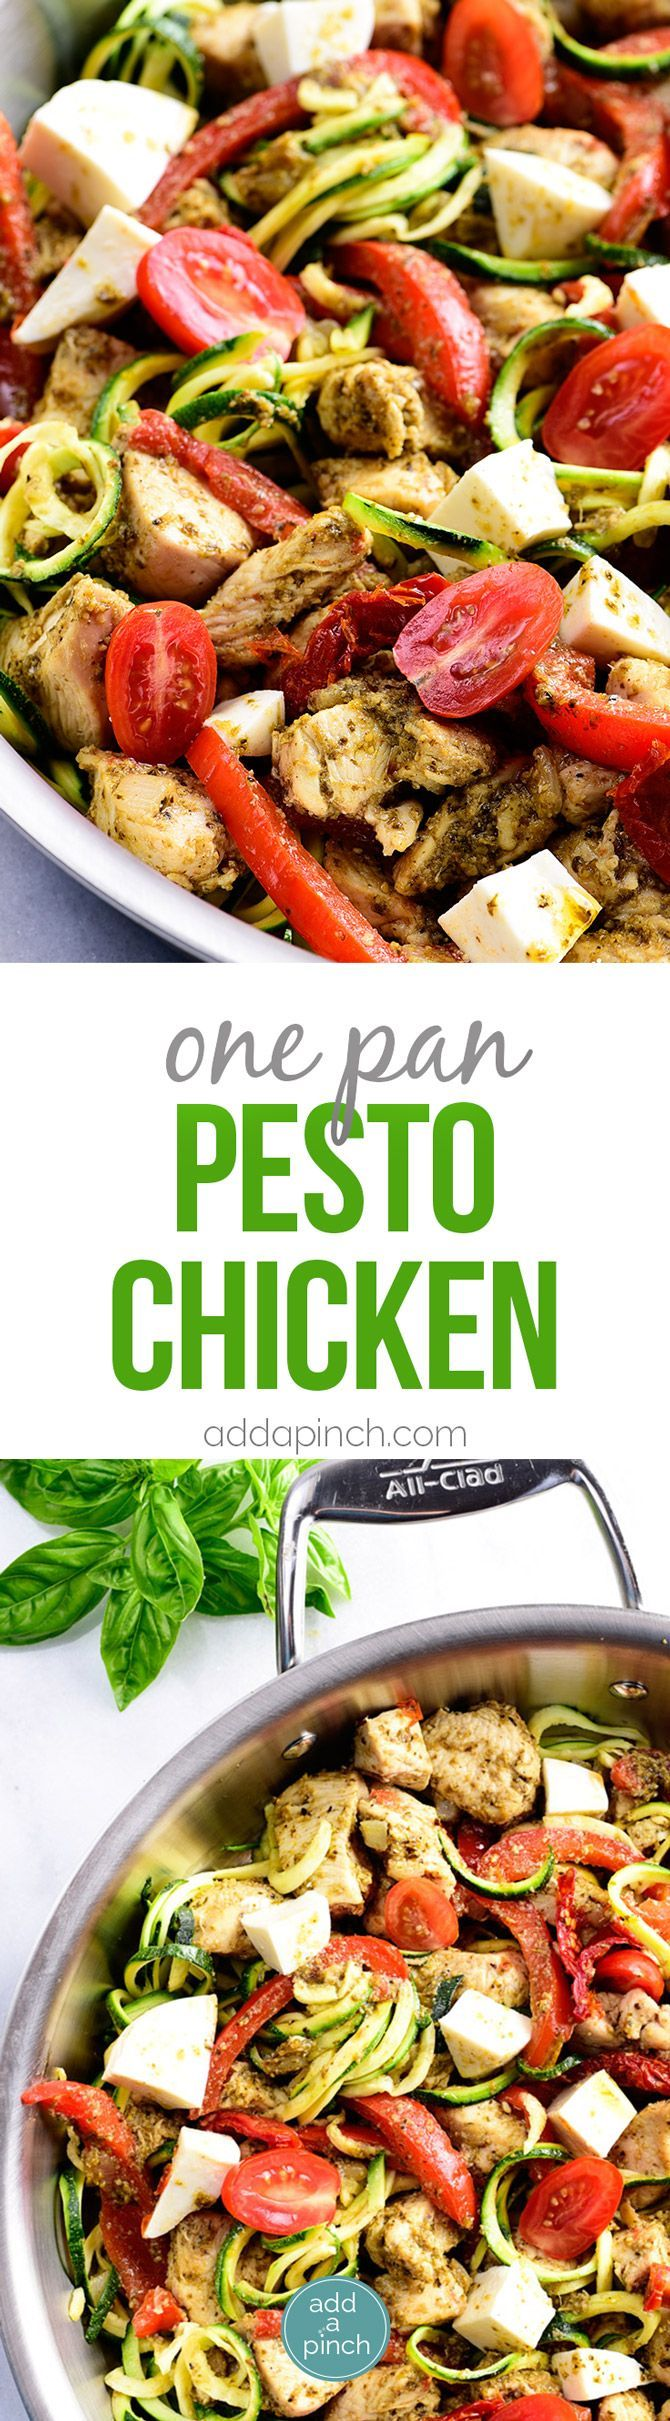 One Pan Pesto Chicken Recipe - This One Pan Pesto Chicken recipe makes a quick and easy answer to what's for supper? Made with chicken, pesto, peppers, tomatoes, zucchini and mozzarella, this will easily become a favorite! //